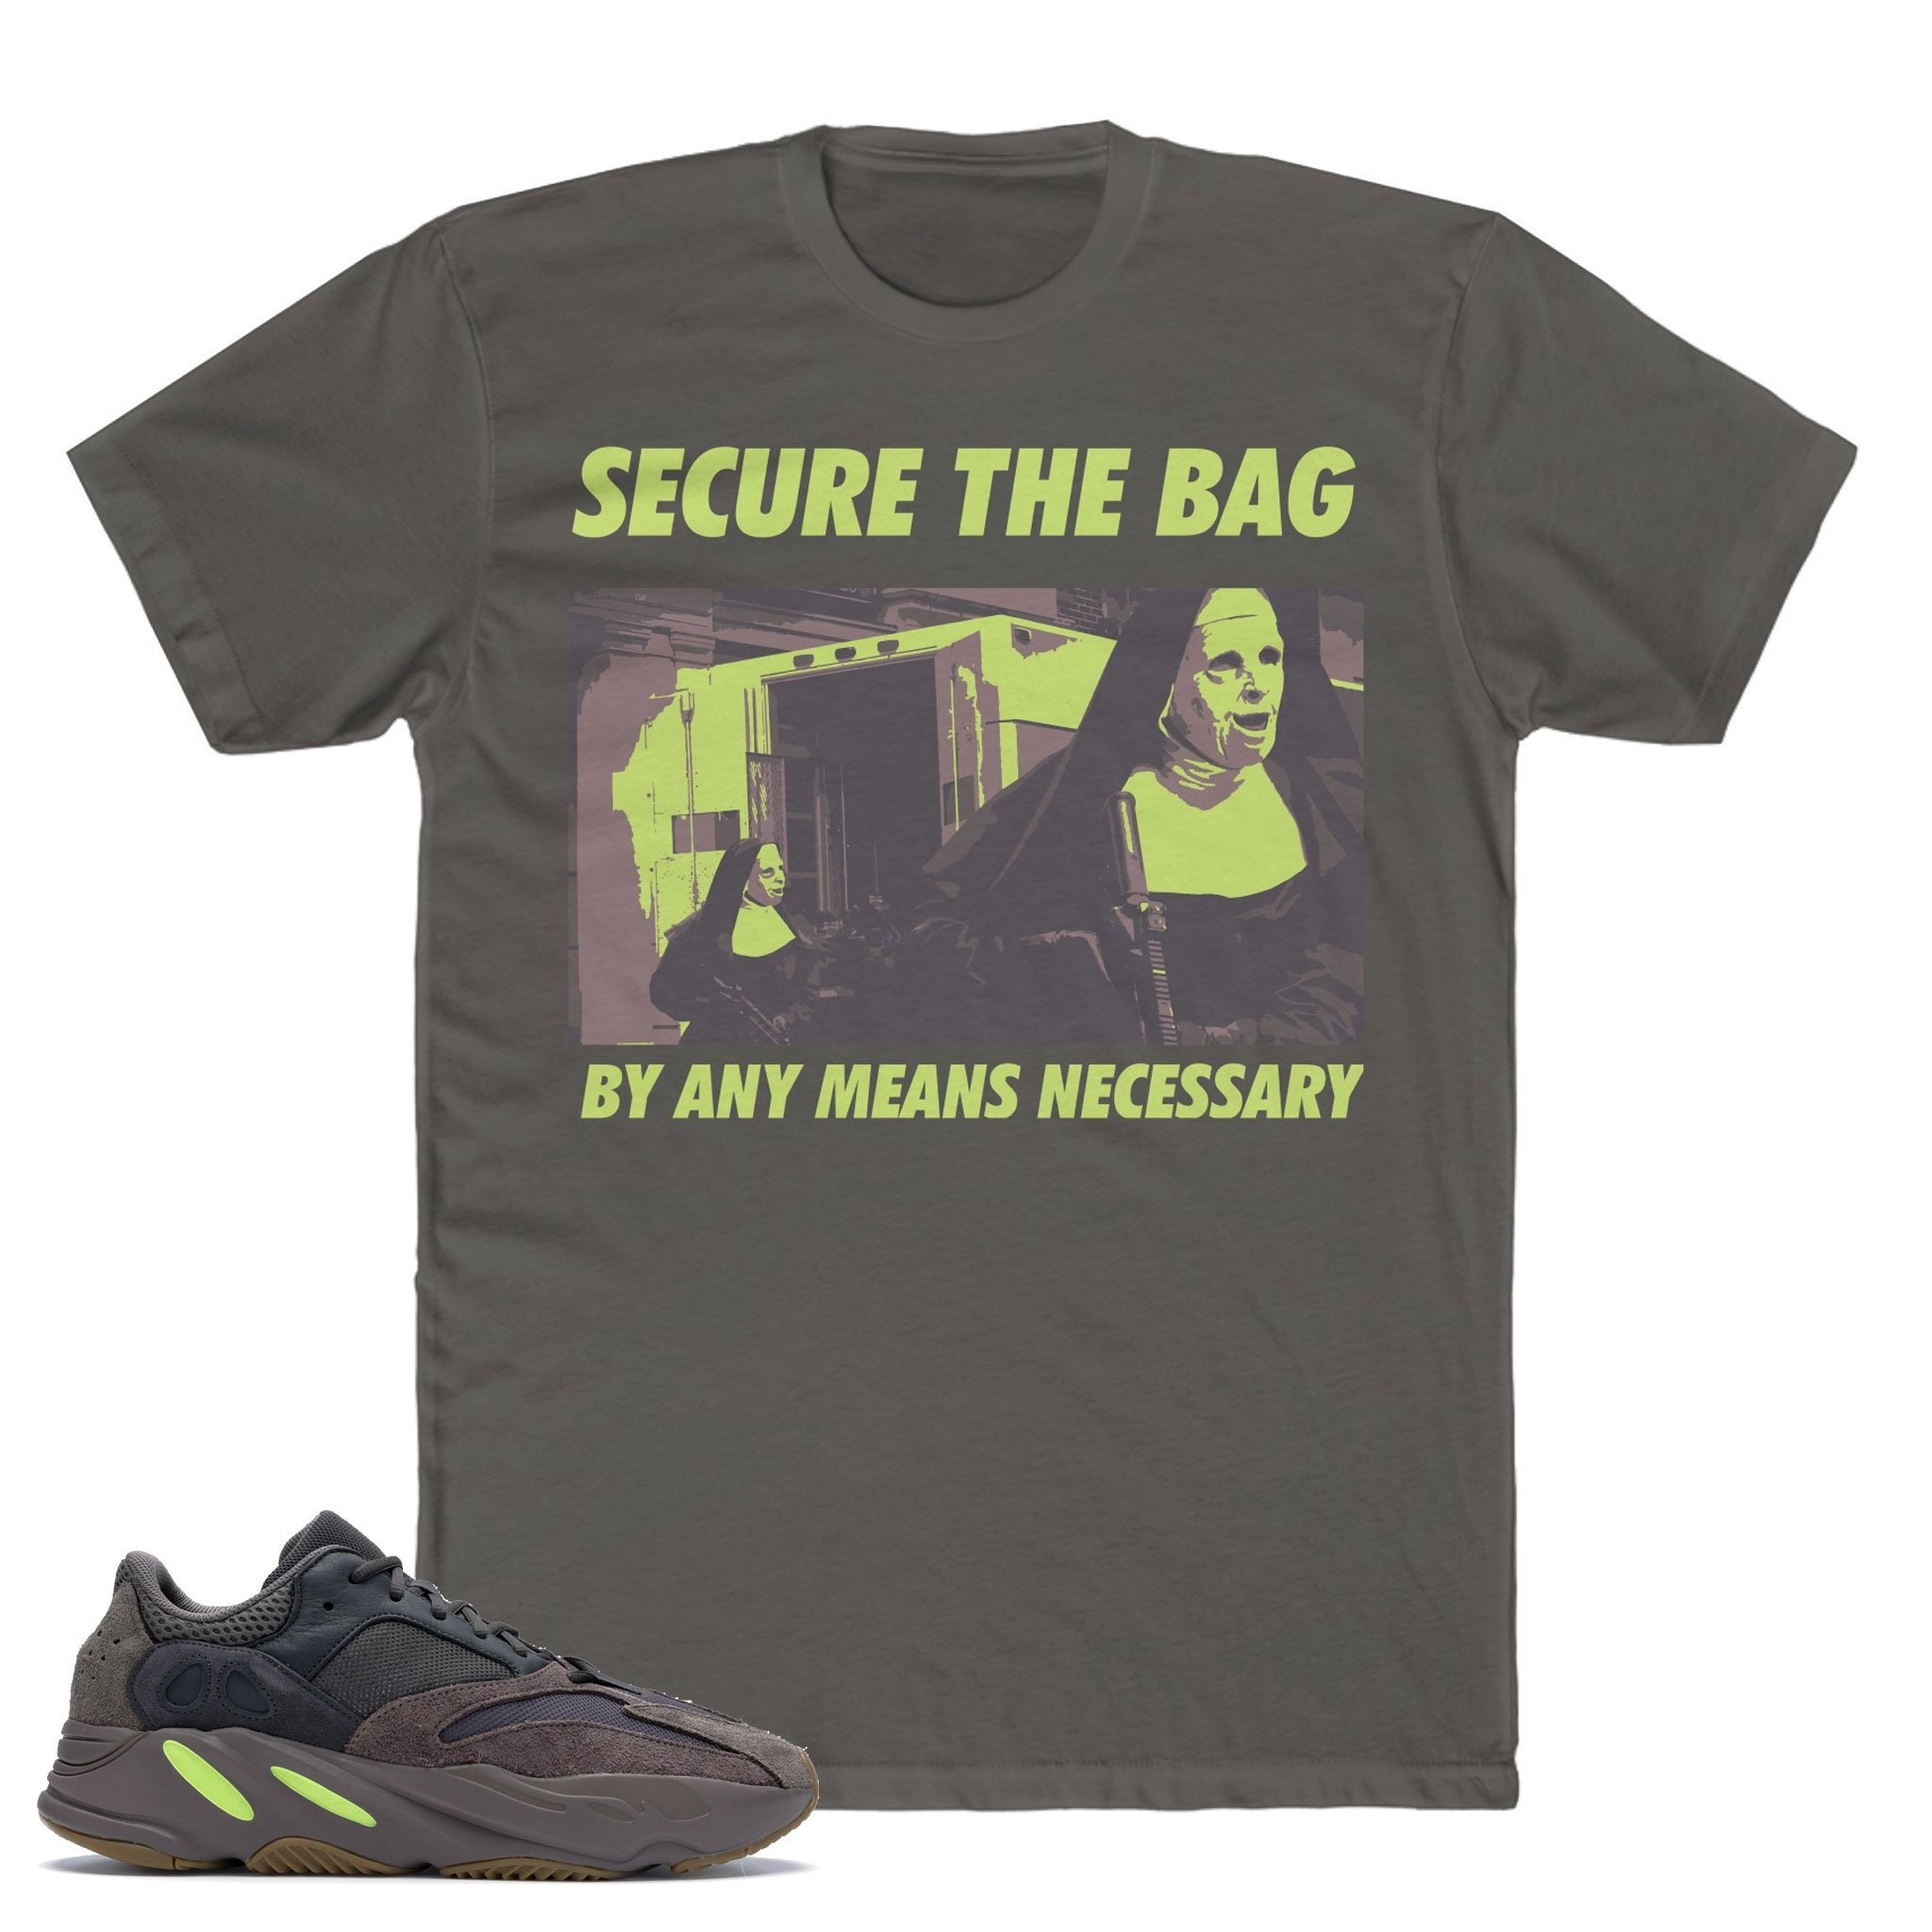 e73cf8869119da Mauve Yeezy Boost 700 T-Shirt Secure The Bag Shirt Yeezy